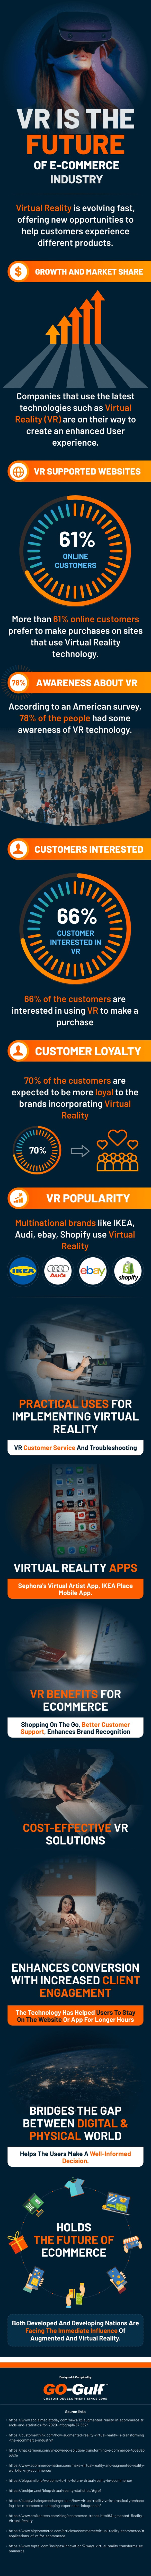 Virtual Reality in eCommerce Statistics And Trend